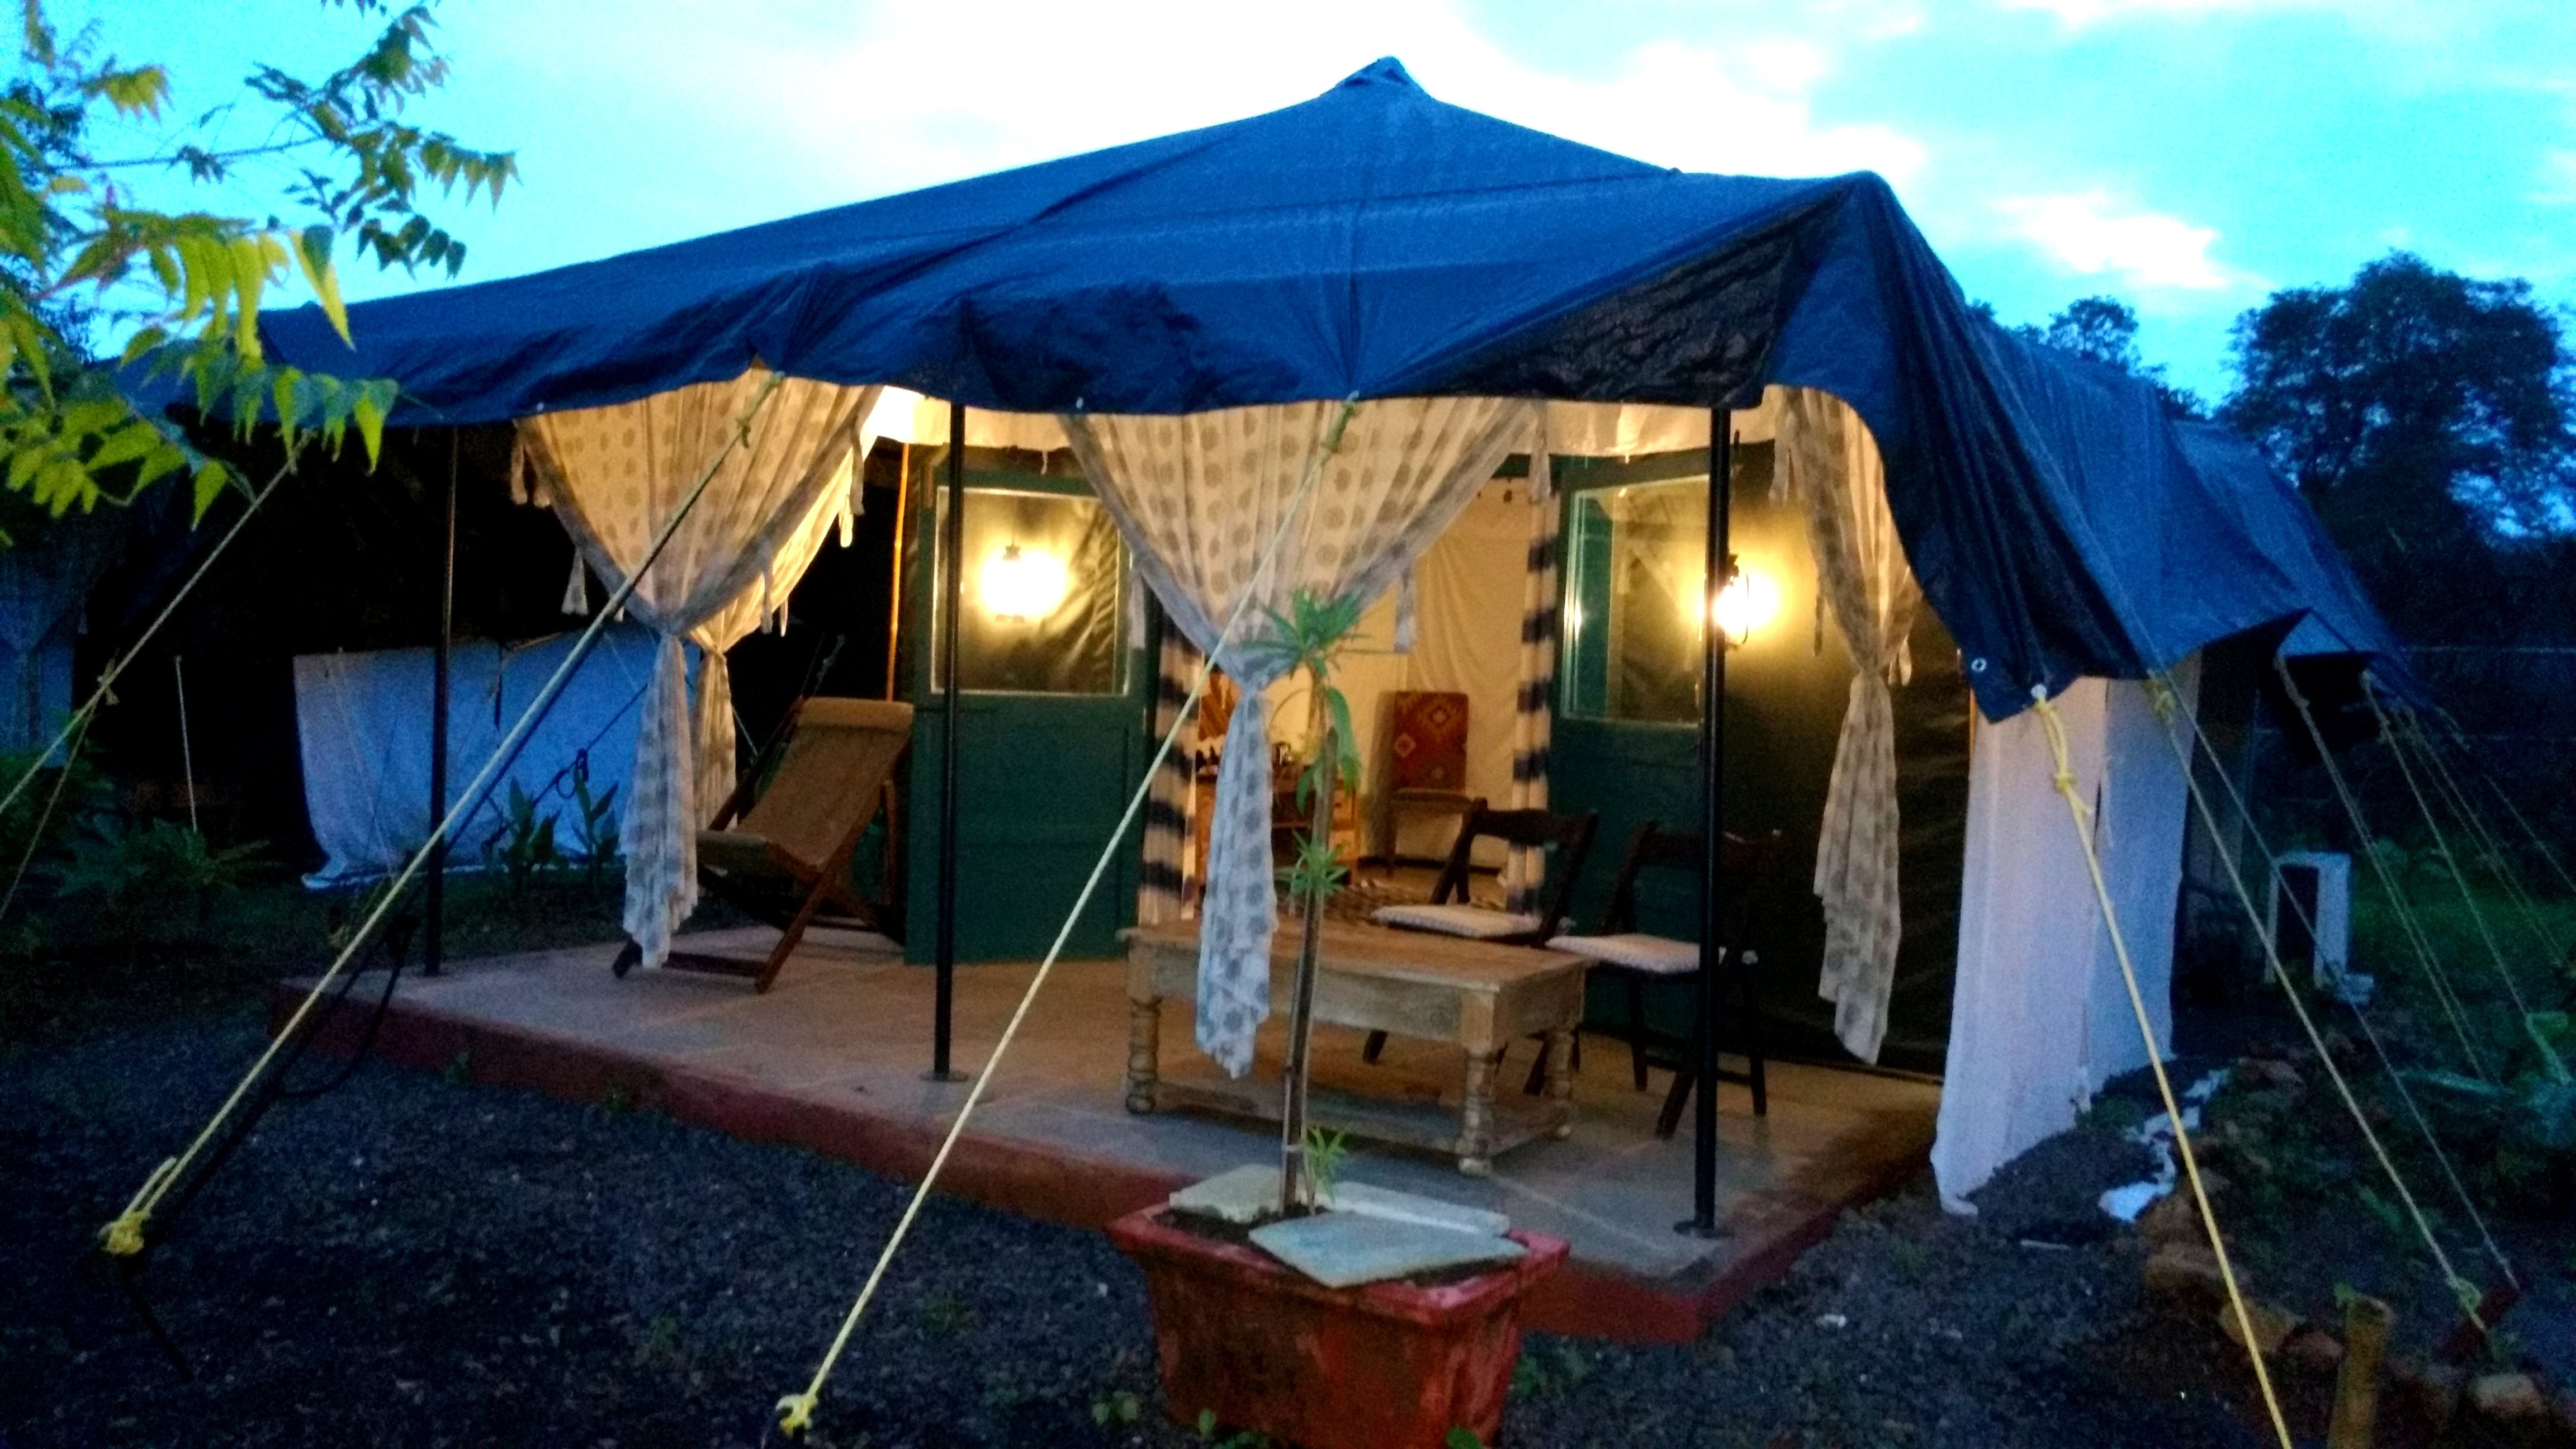 Every tent has its own private veranda a